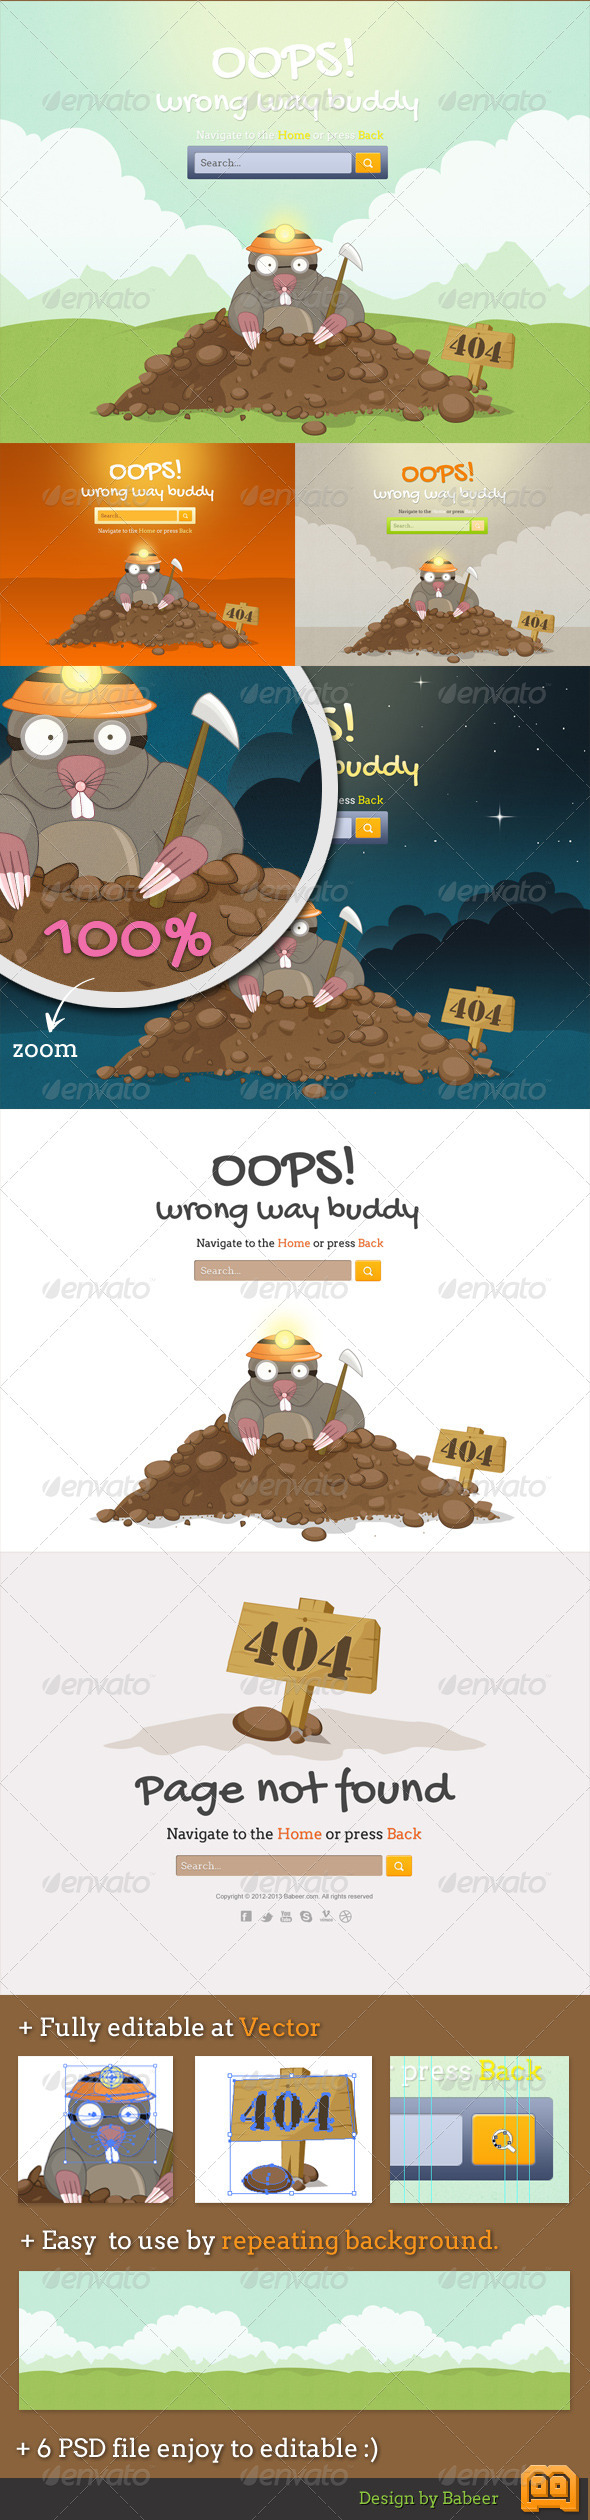 Mole 404 Error Pages